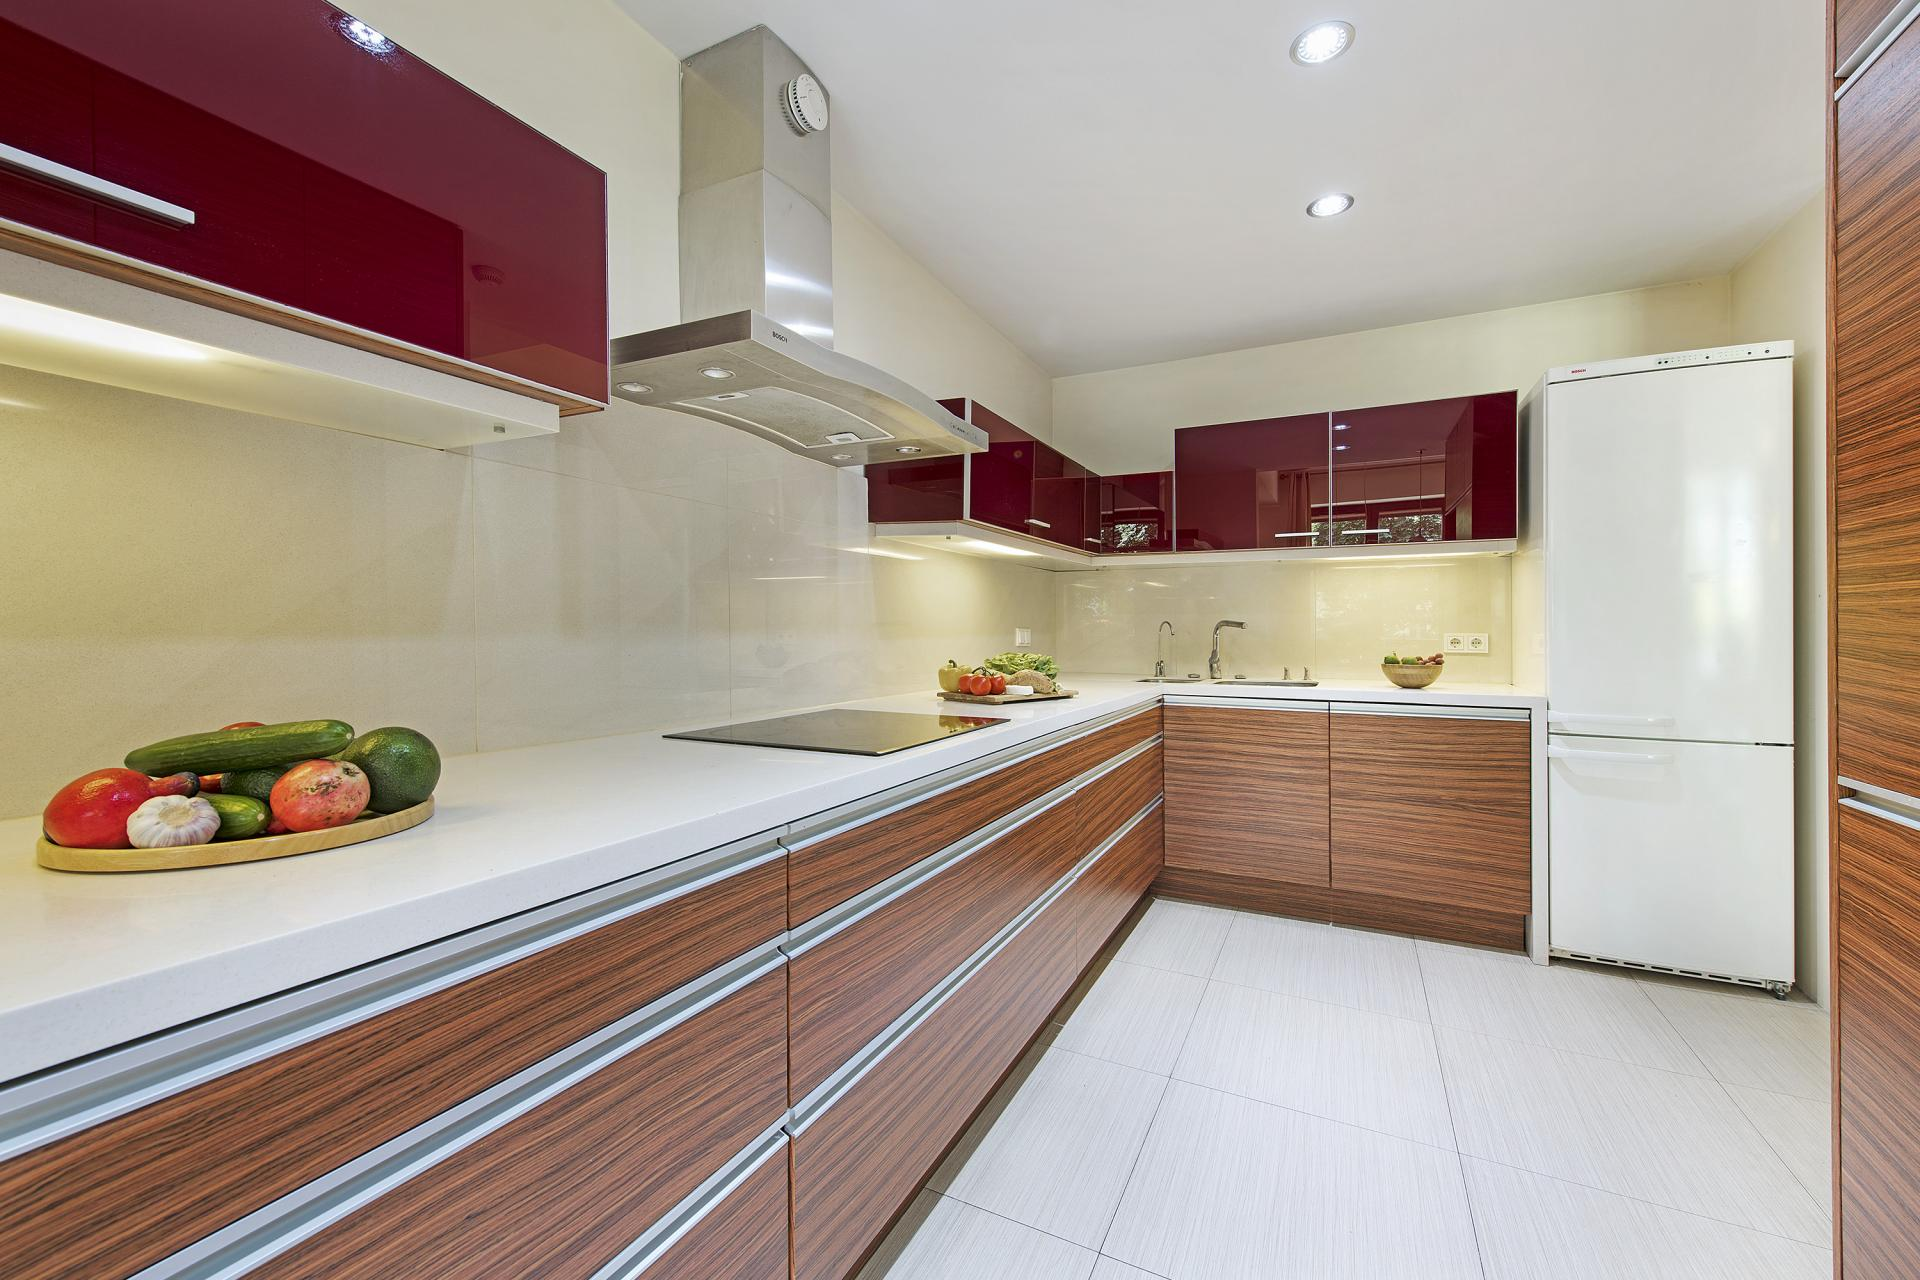 Fully equipped kitchen at Wilanow 6 Apartments, Wilanów, Warsaw - Citybase Apartments